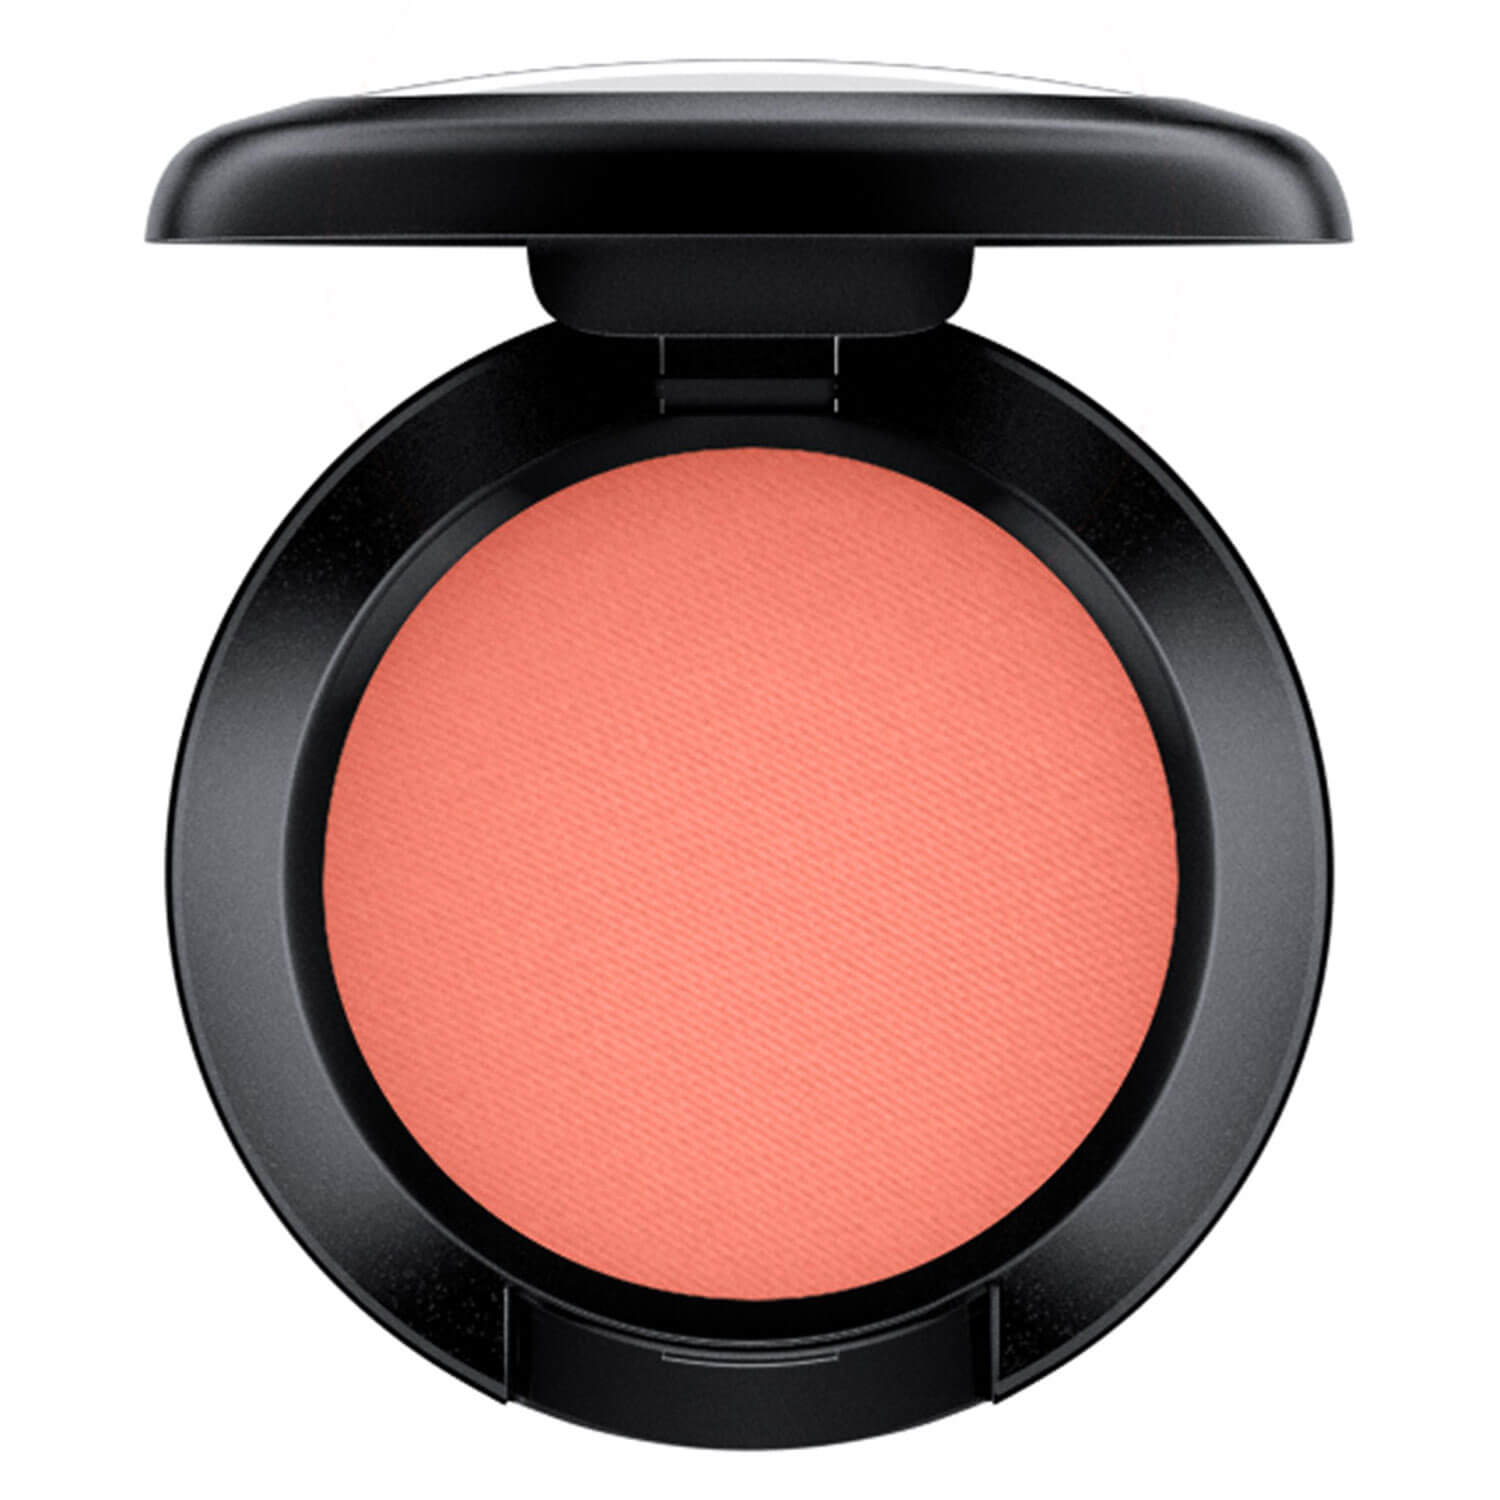 M·A·C In Monochrome - Eye Shadow Matte See The Future